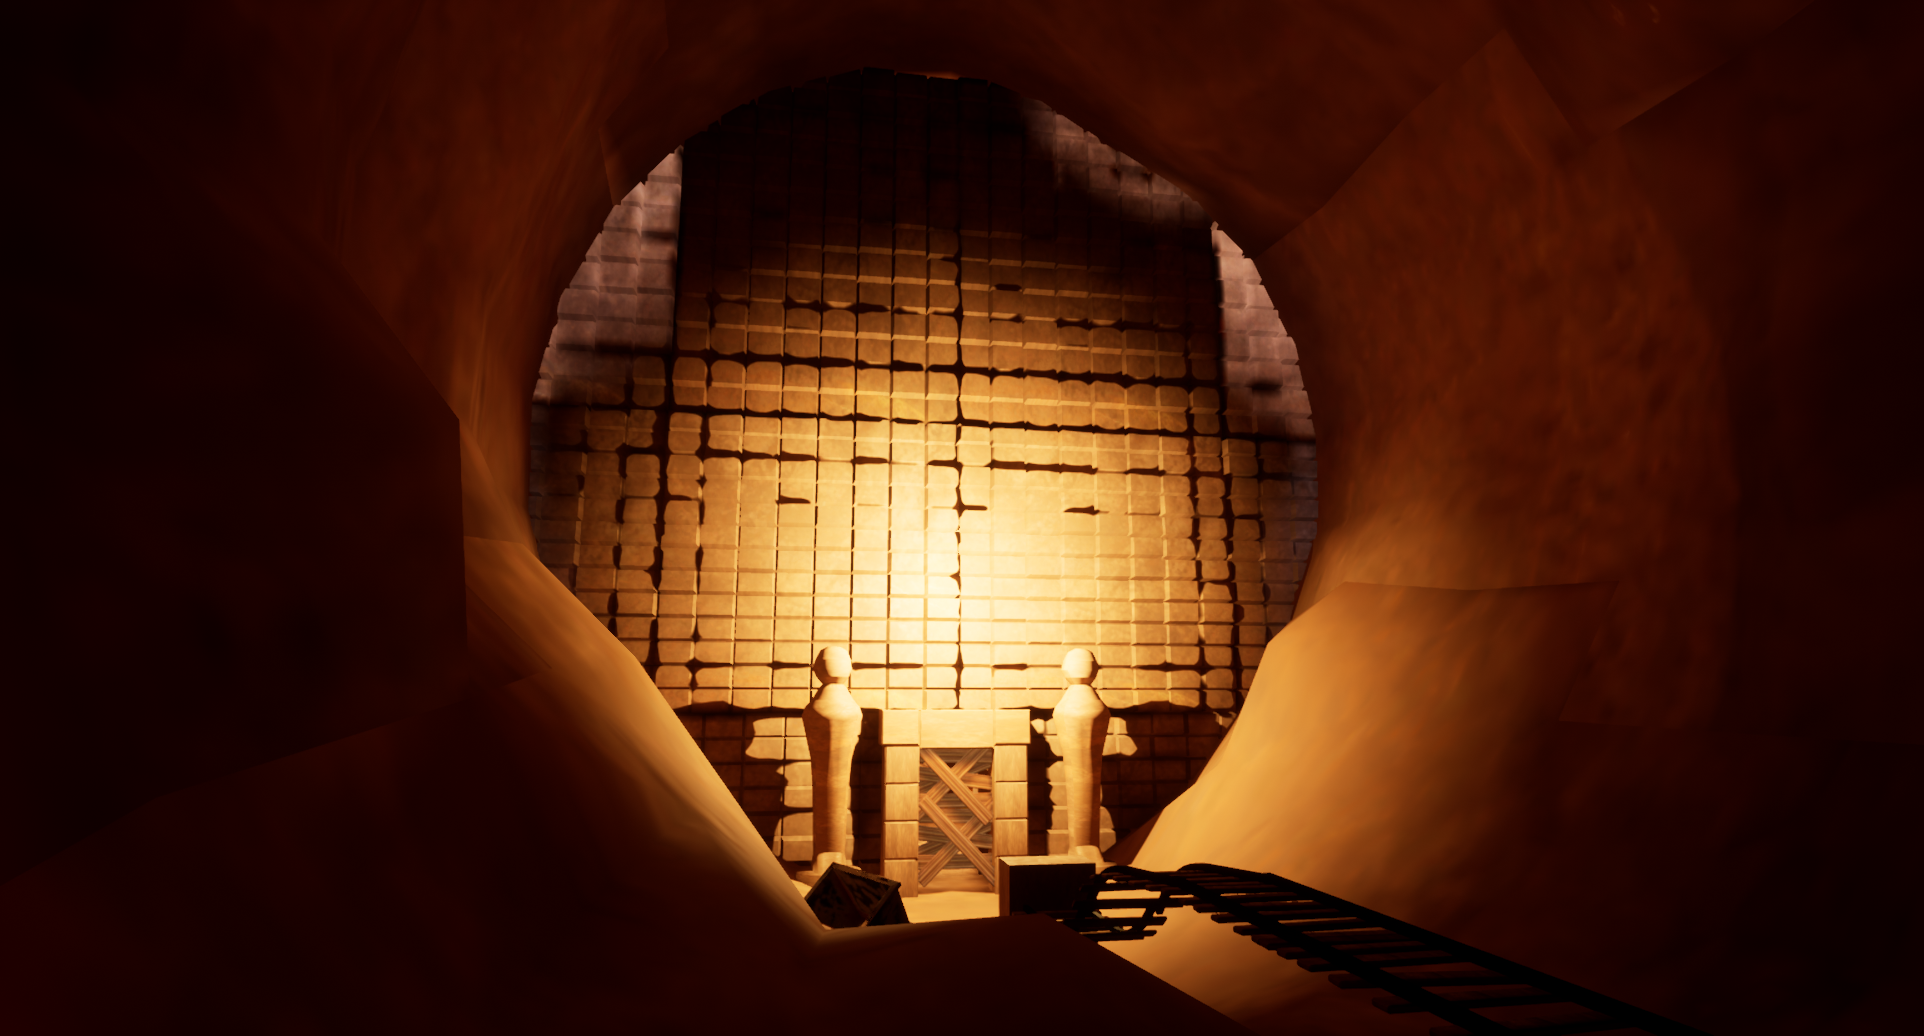 Lost Elements - Mine Exit Image